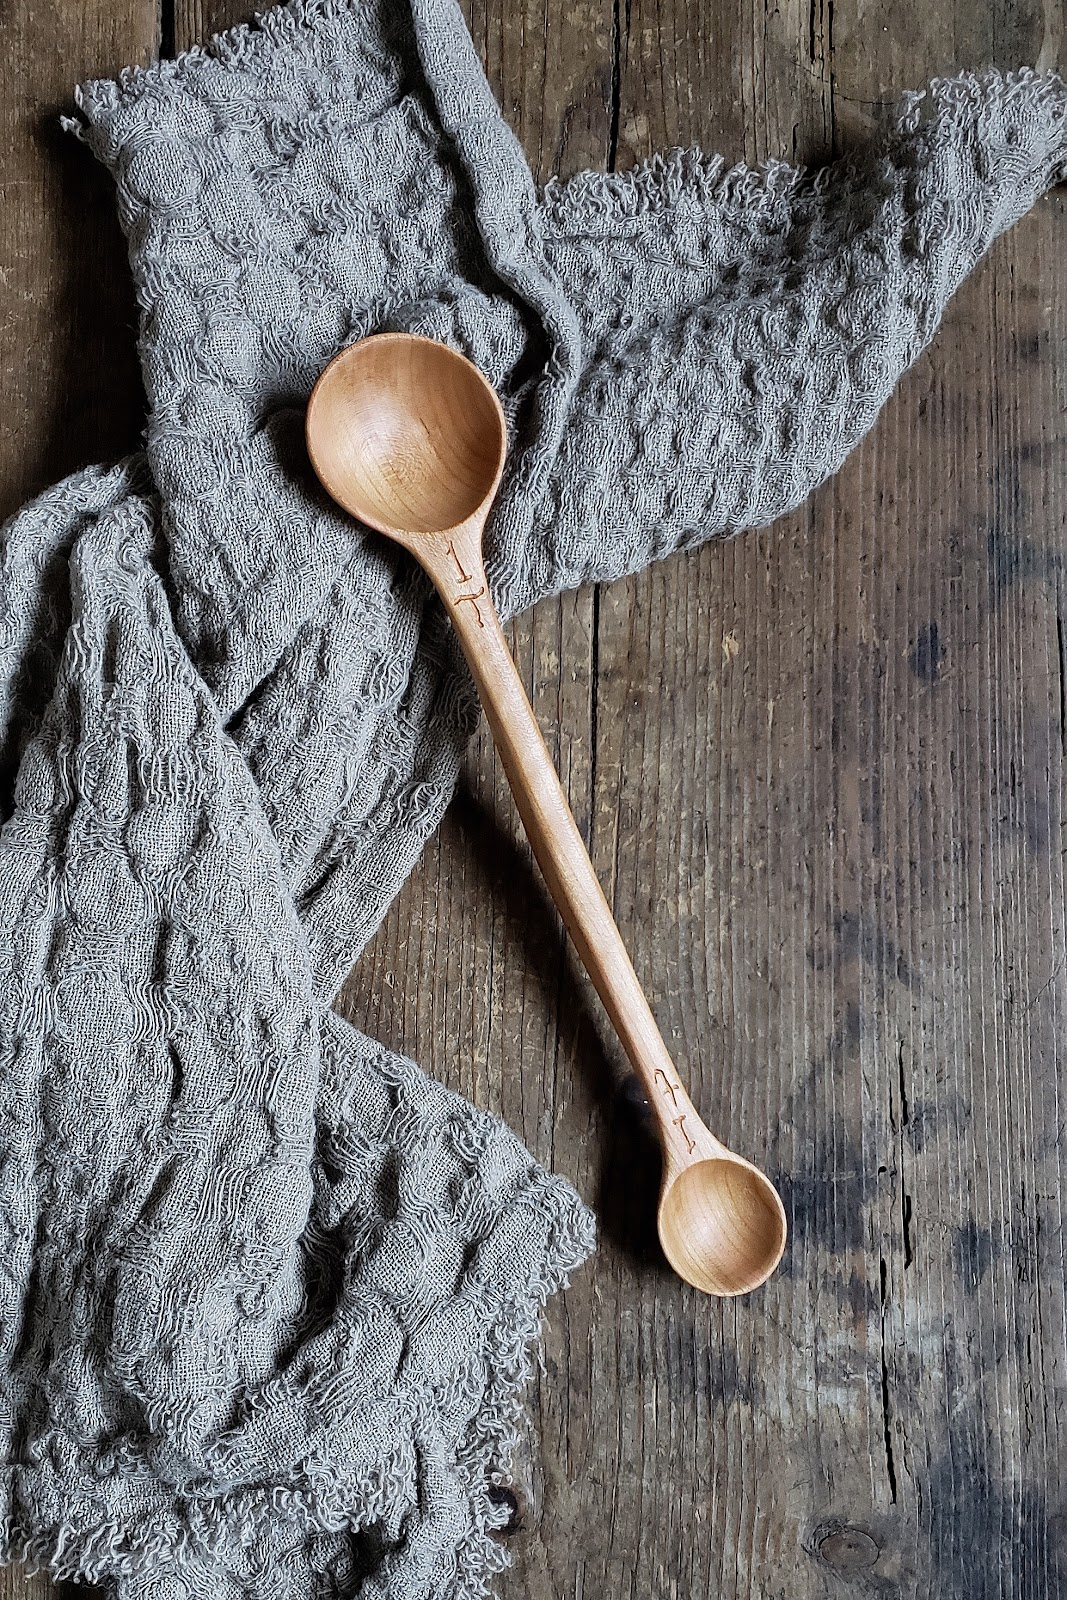 Wooden Spoon Handcrafted